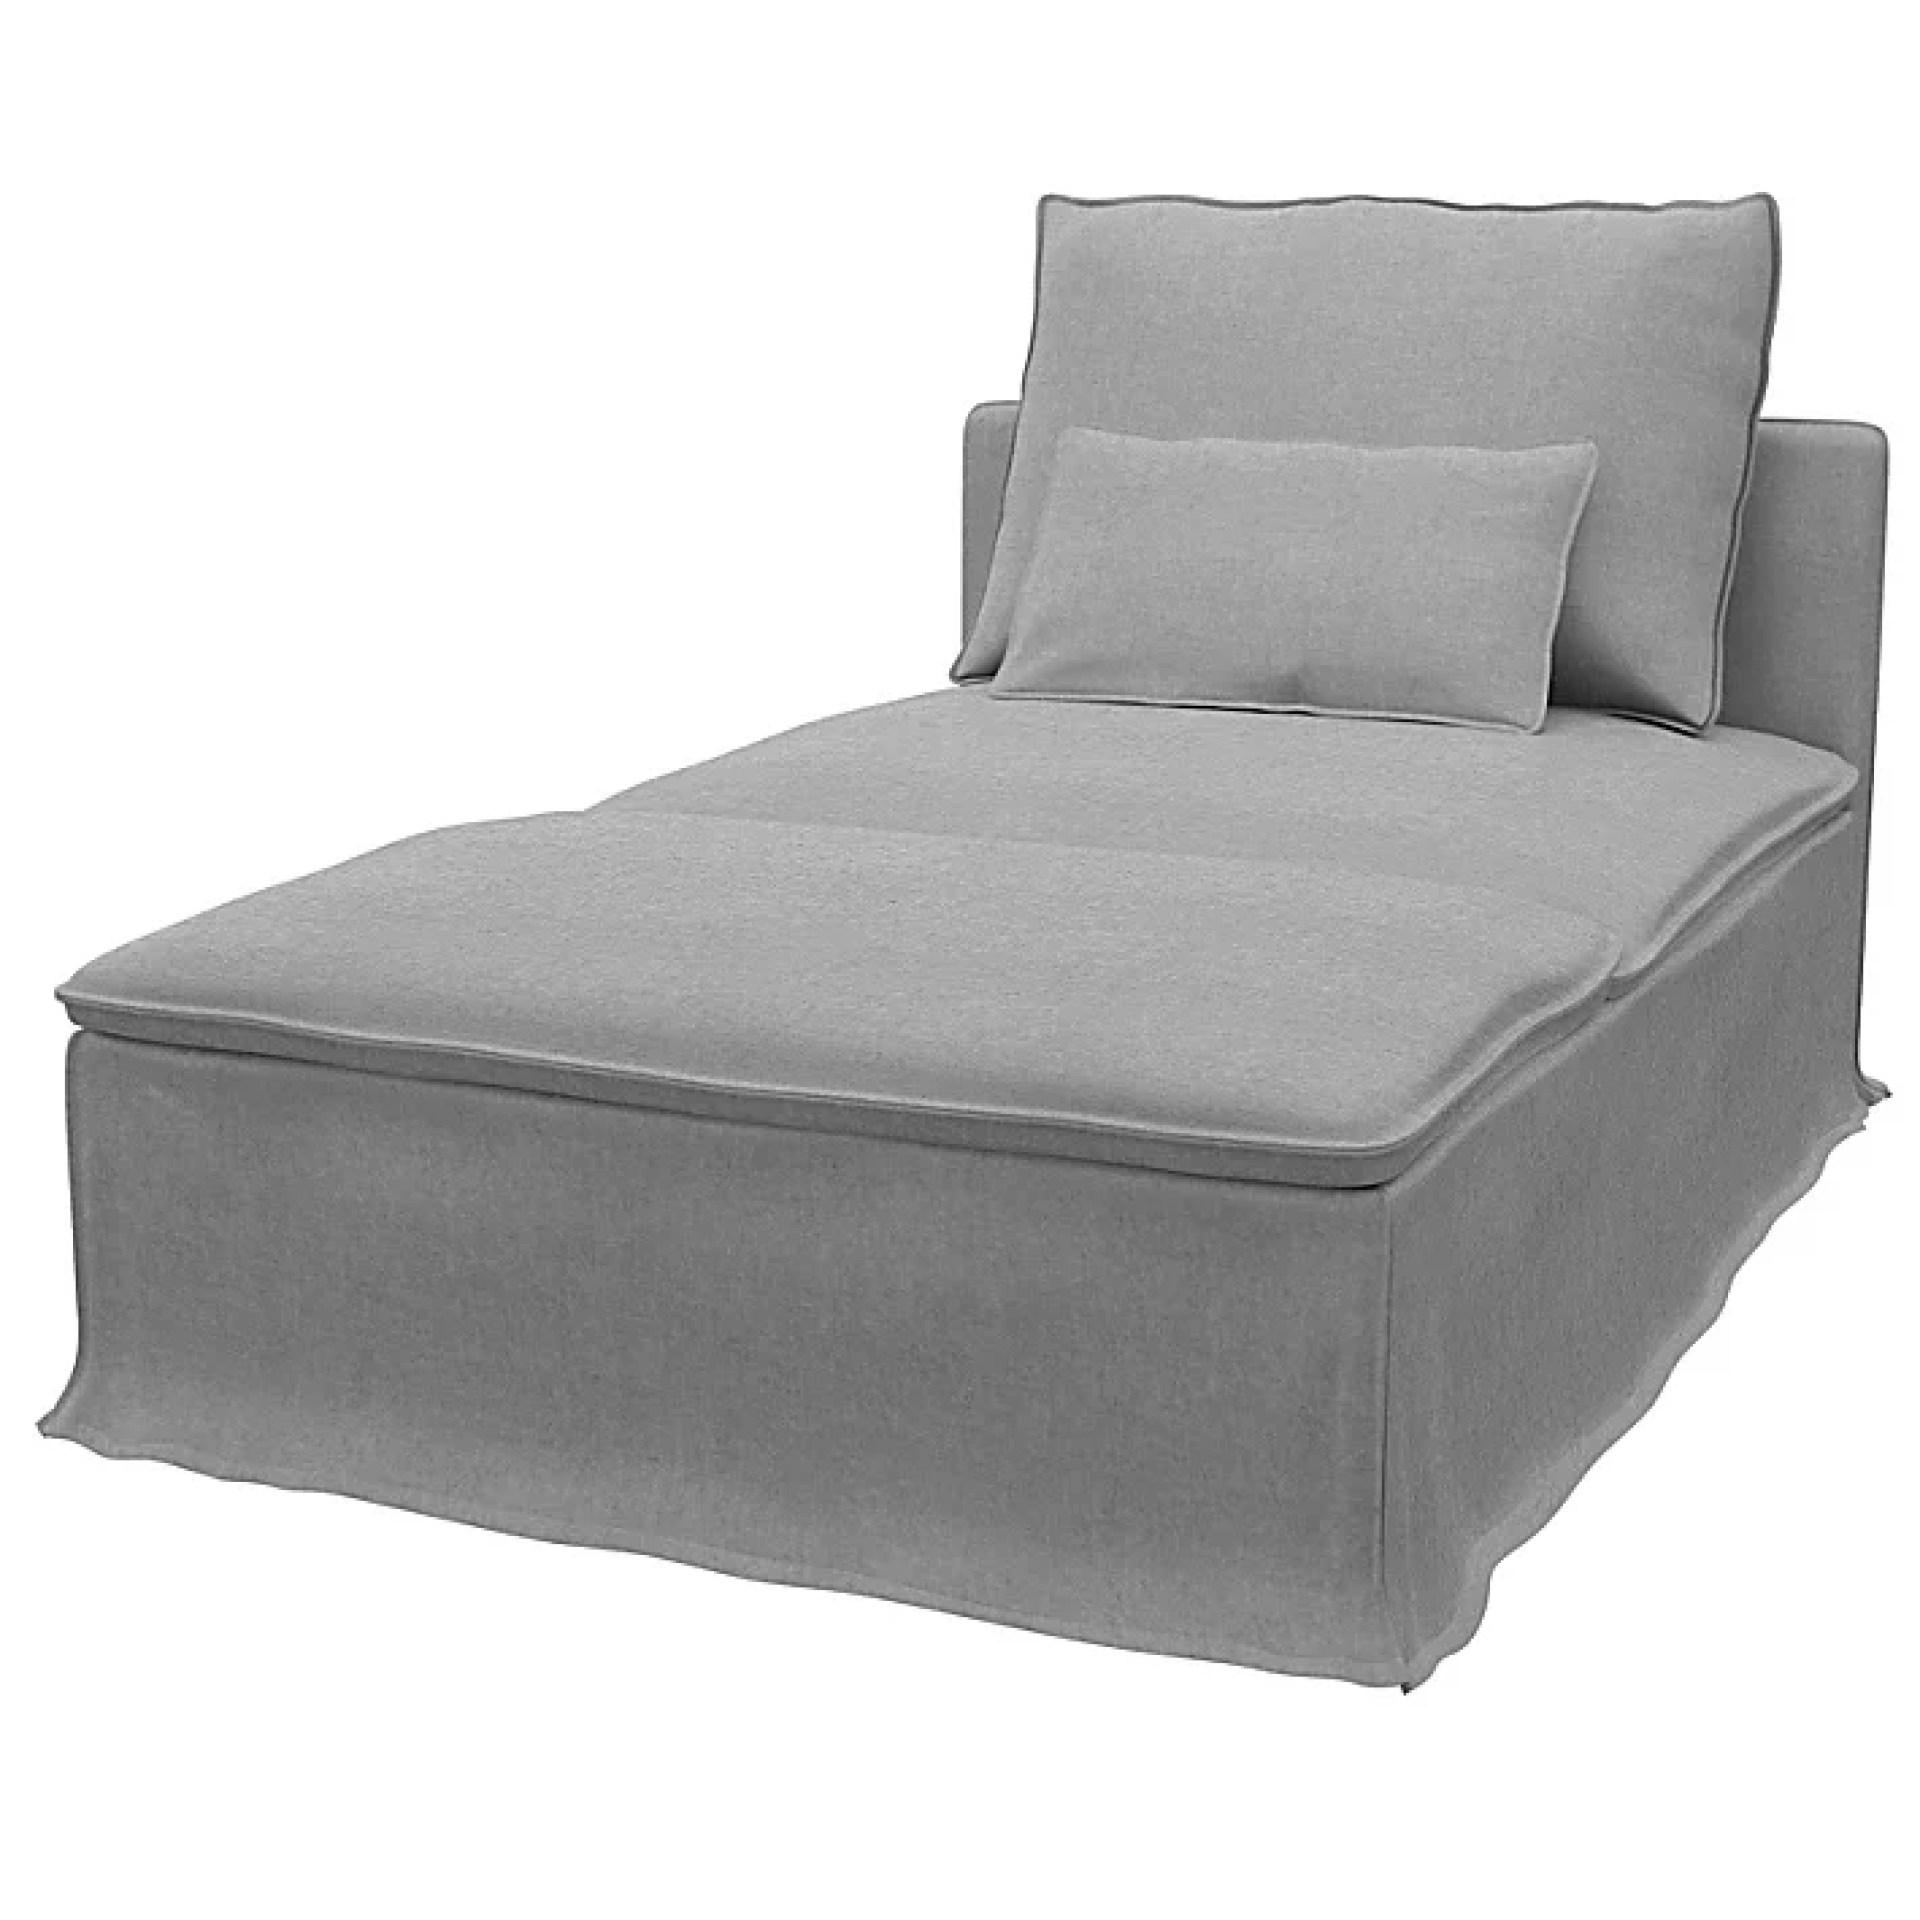 Ikea Söderhamn Cover For Chaise Longue Without Armrest